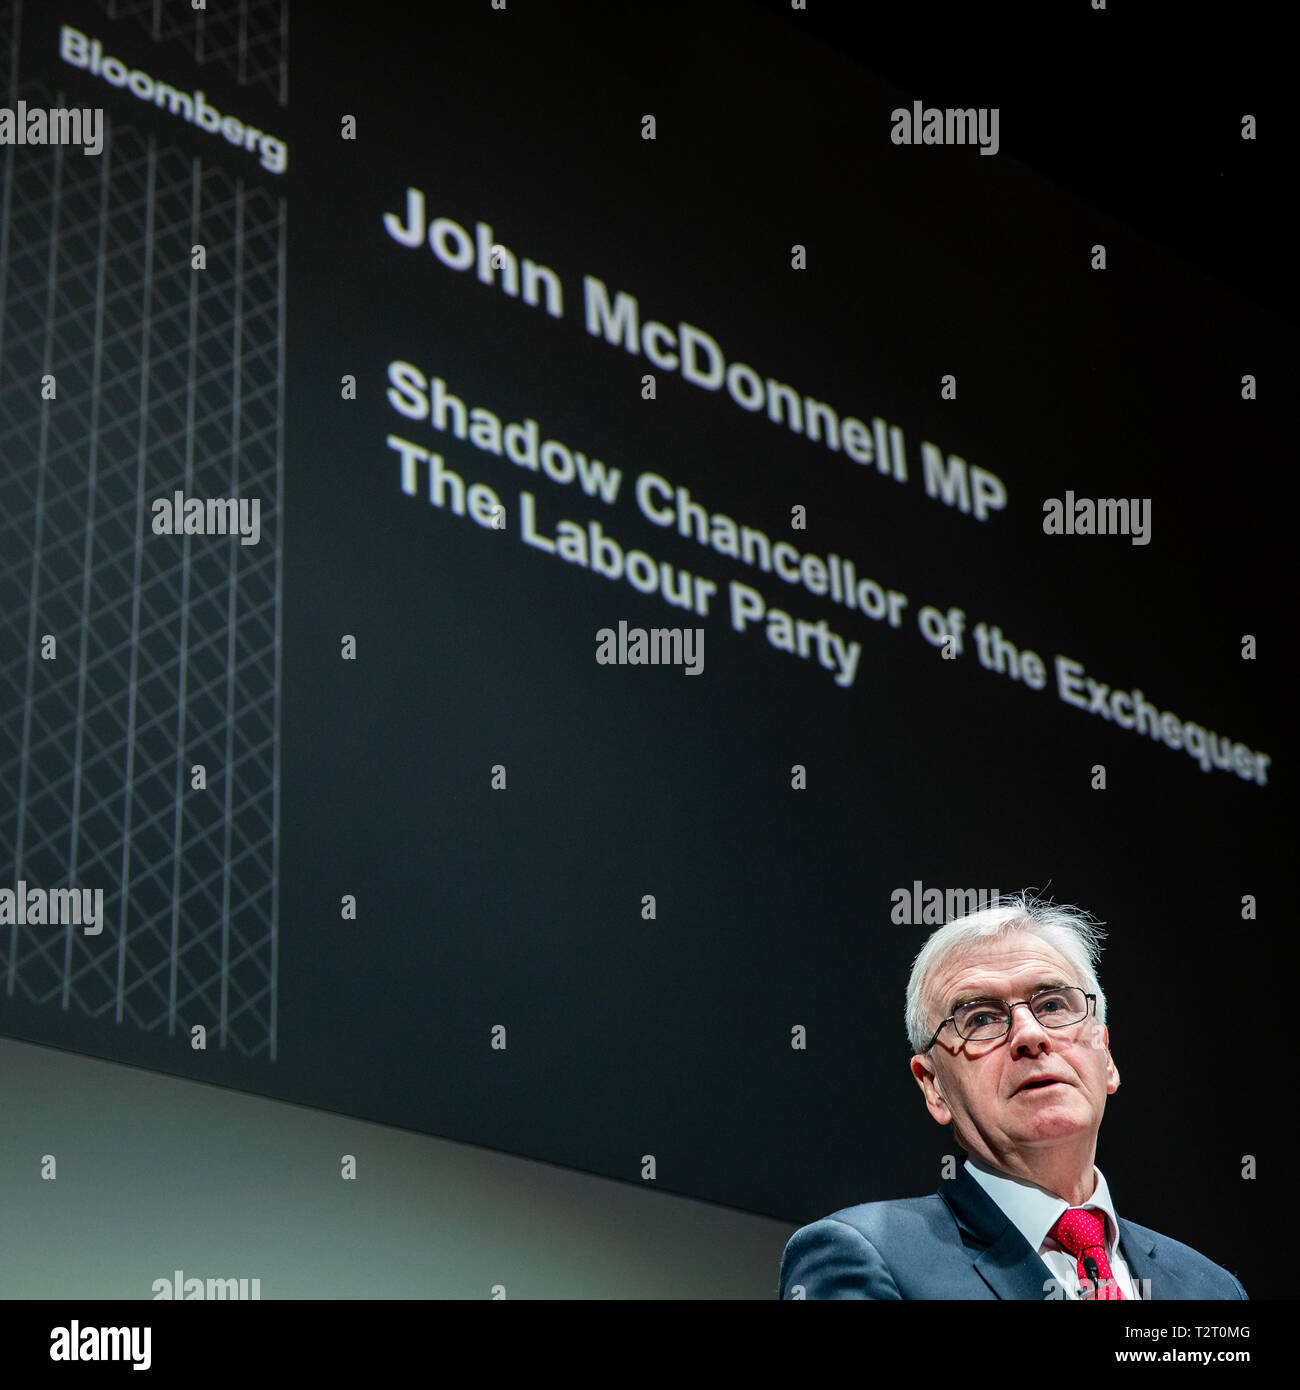 Shadow Chancellor of the Exchequer, John McDonnell, gives a speech to businesses leaders at the Bloomberg European headquarters in London. Stock Photo